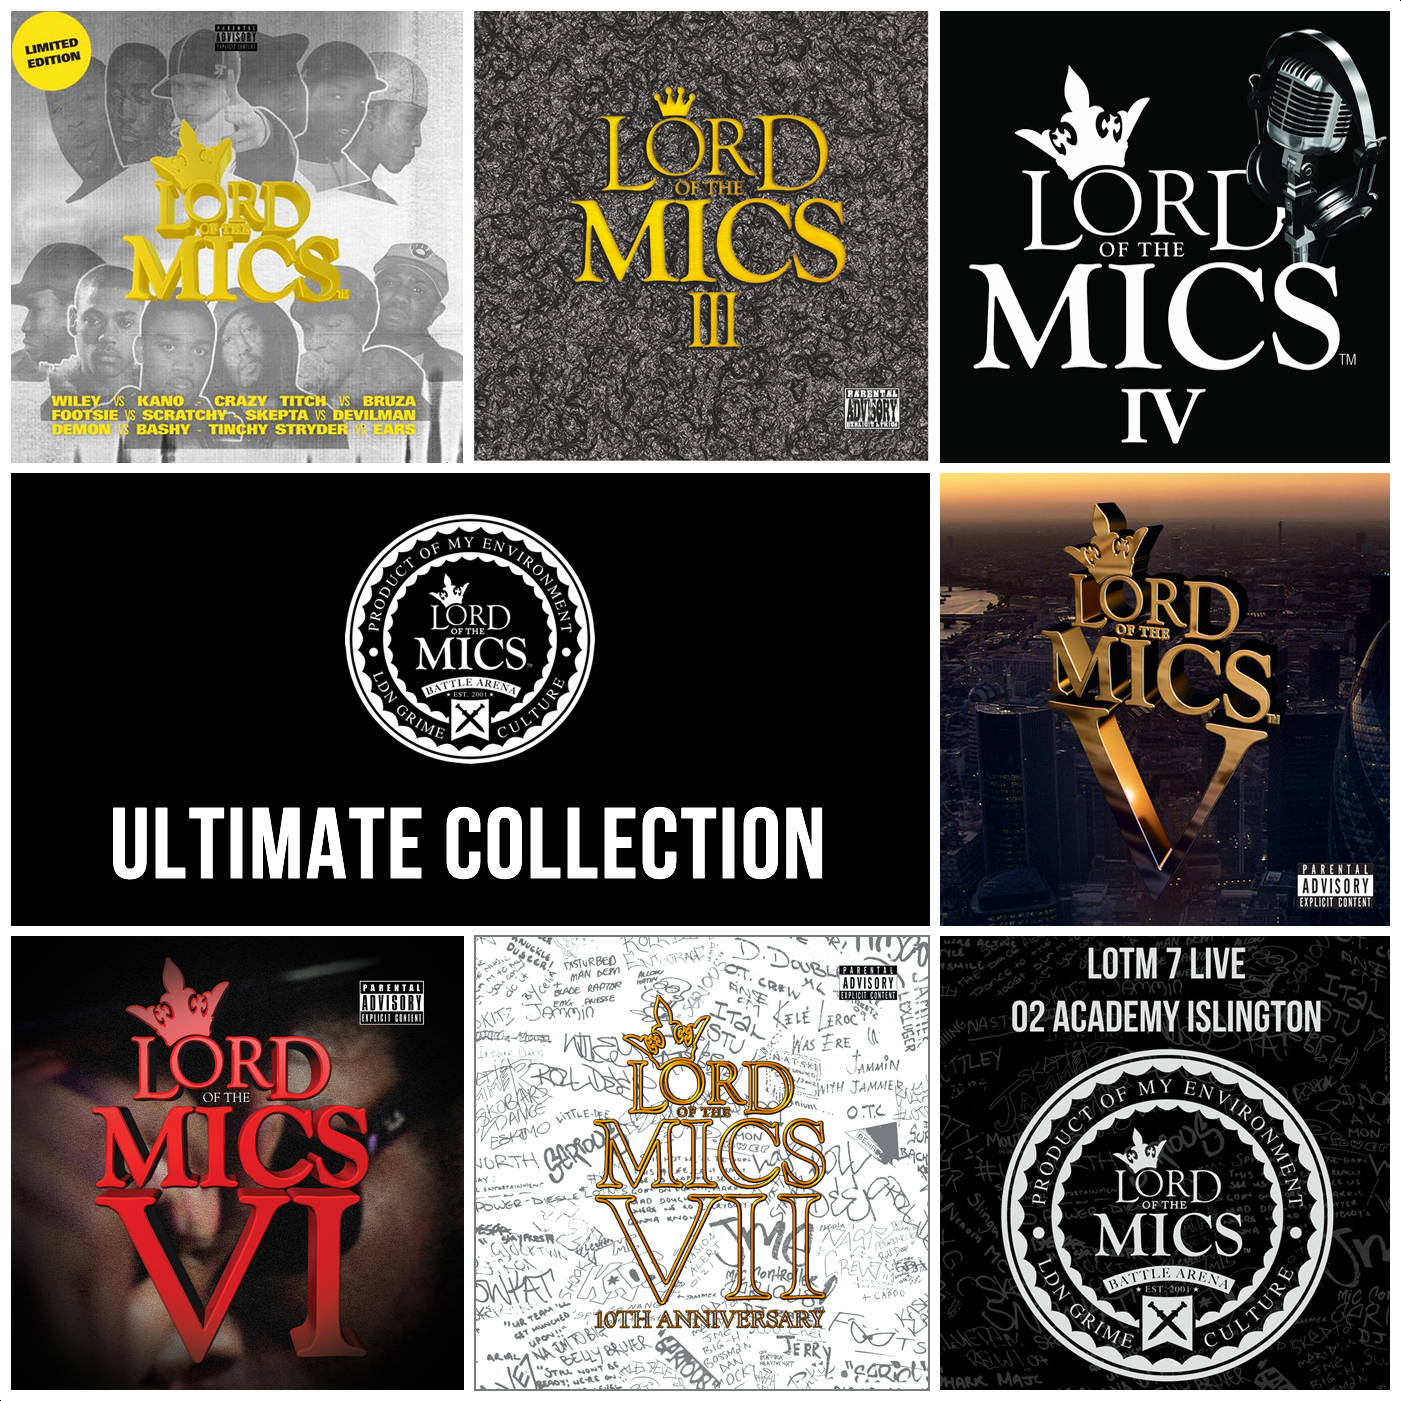 Lord of the Mics Ultimate Collection